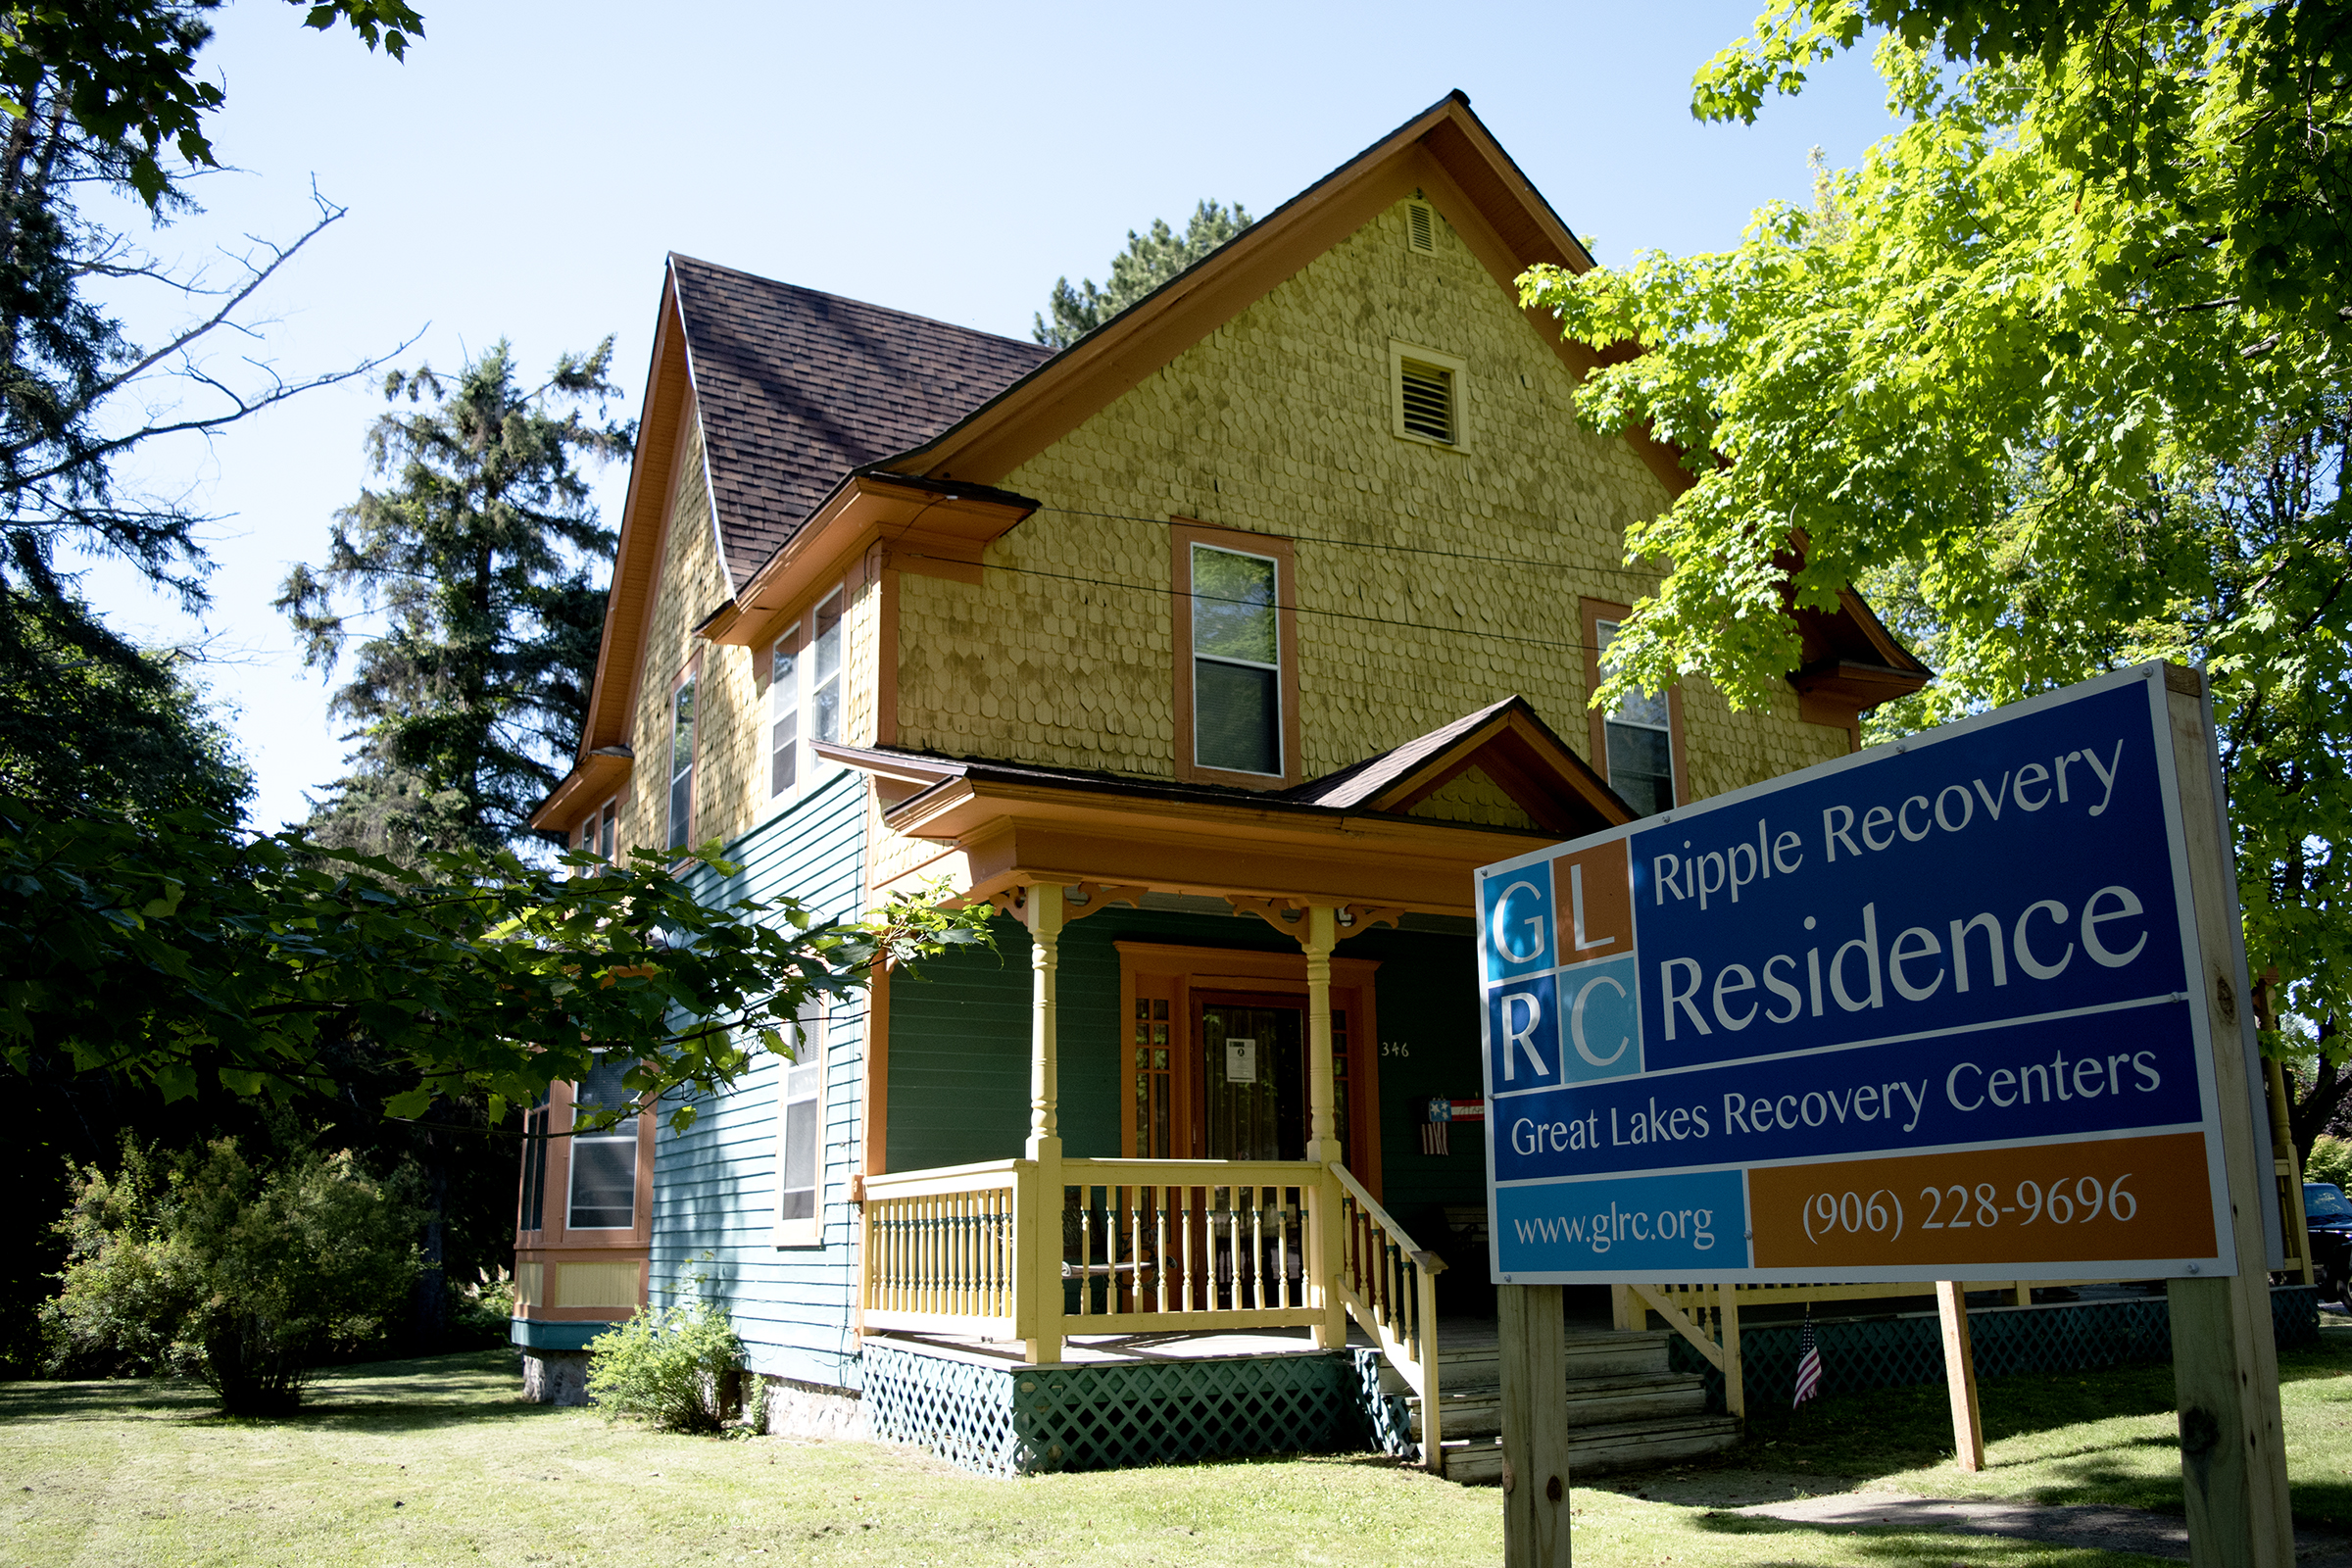 GLRC Ripple Recovery Residence